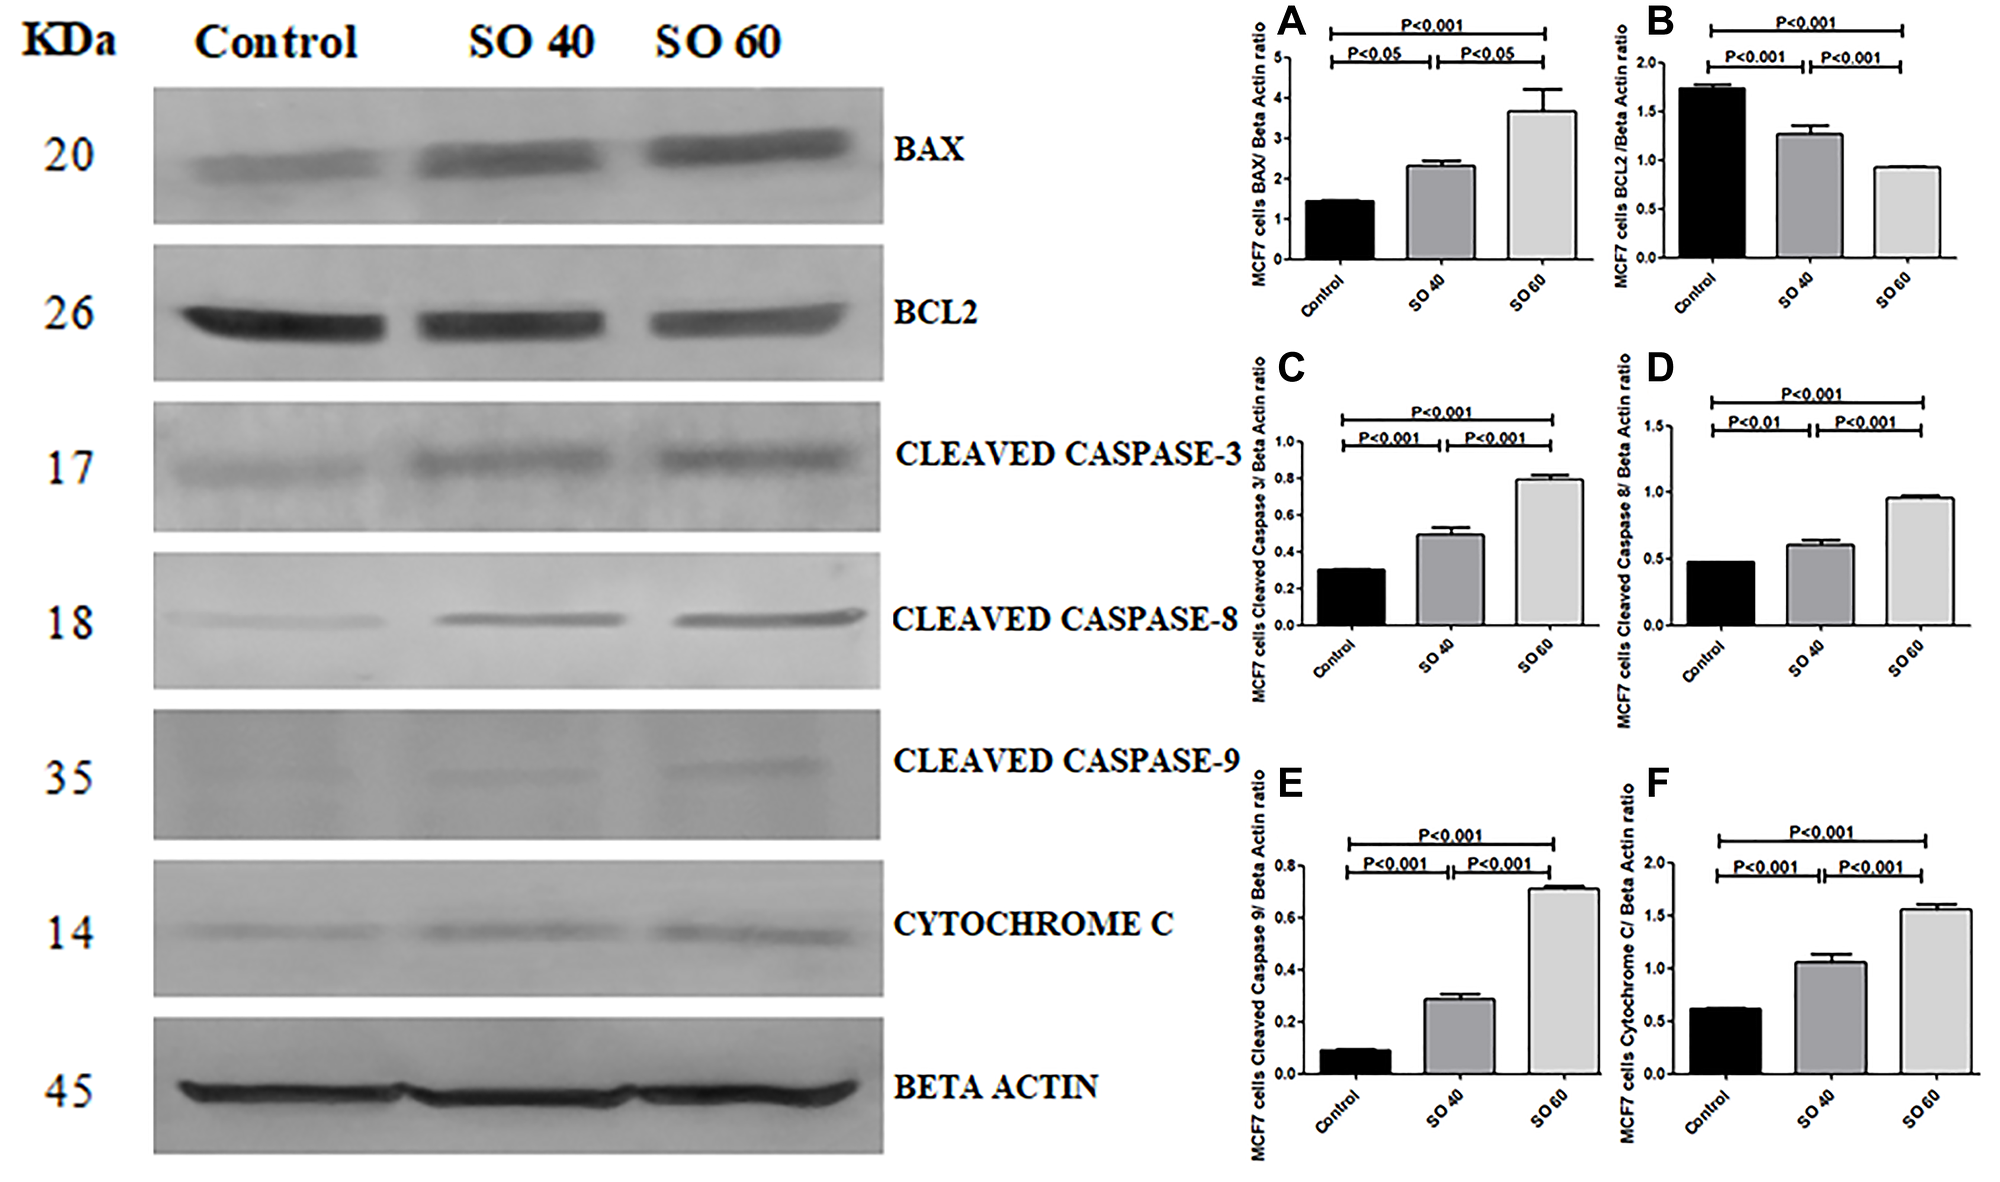 Expression of apoptotic proteins Bax, cleaved caspase-3, cleaved caspase-8, cleaved caspase-9, cytochrome c and anti-apoptotic proteins Bcl2 in 40 mmol and 60 mmol SO treated MCF-7 cancer cells compared to control non-treated MCF-7 cells.